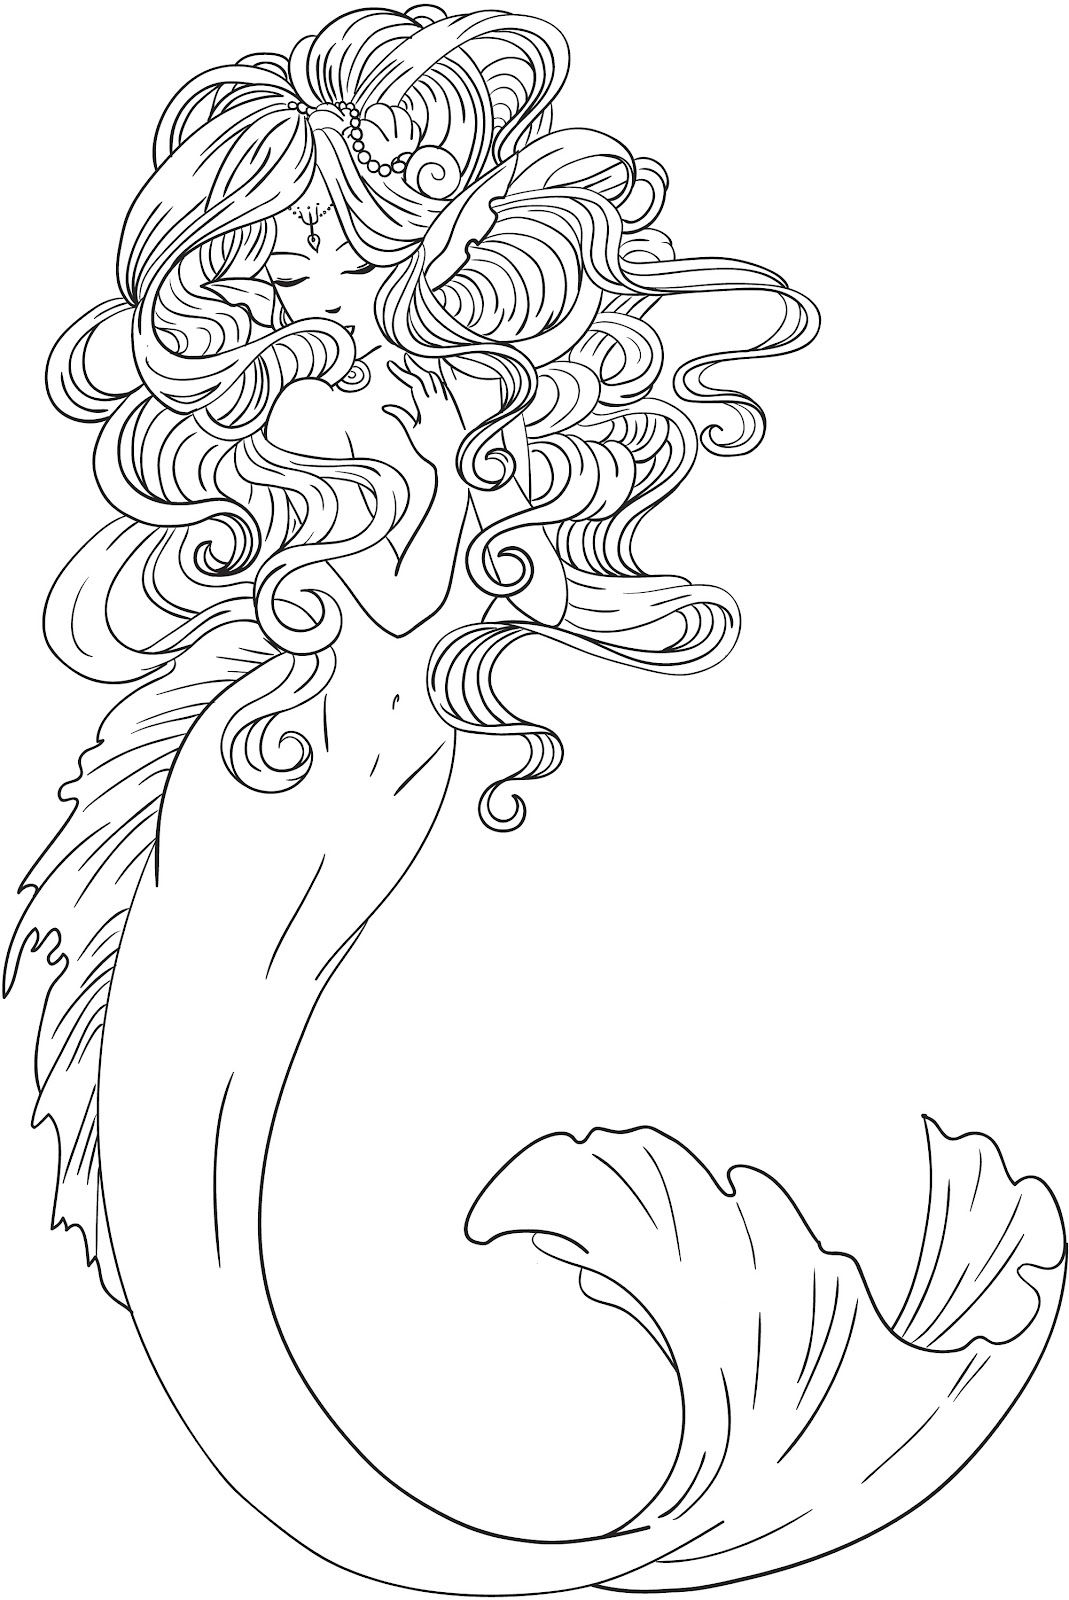 Cute Mermaid Coloring Pages Online